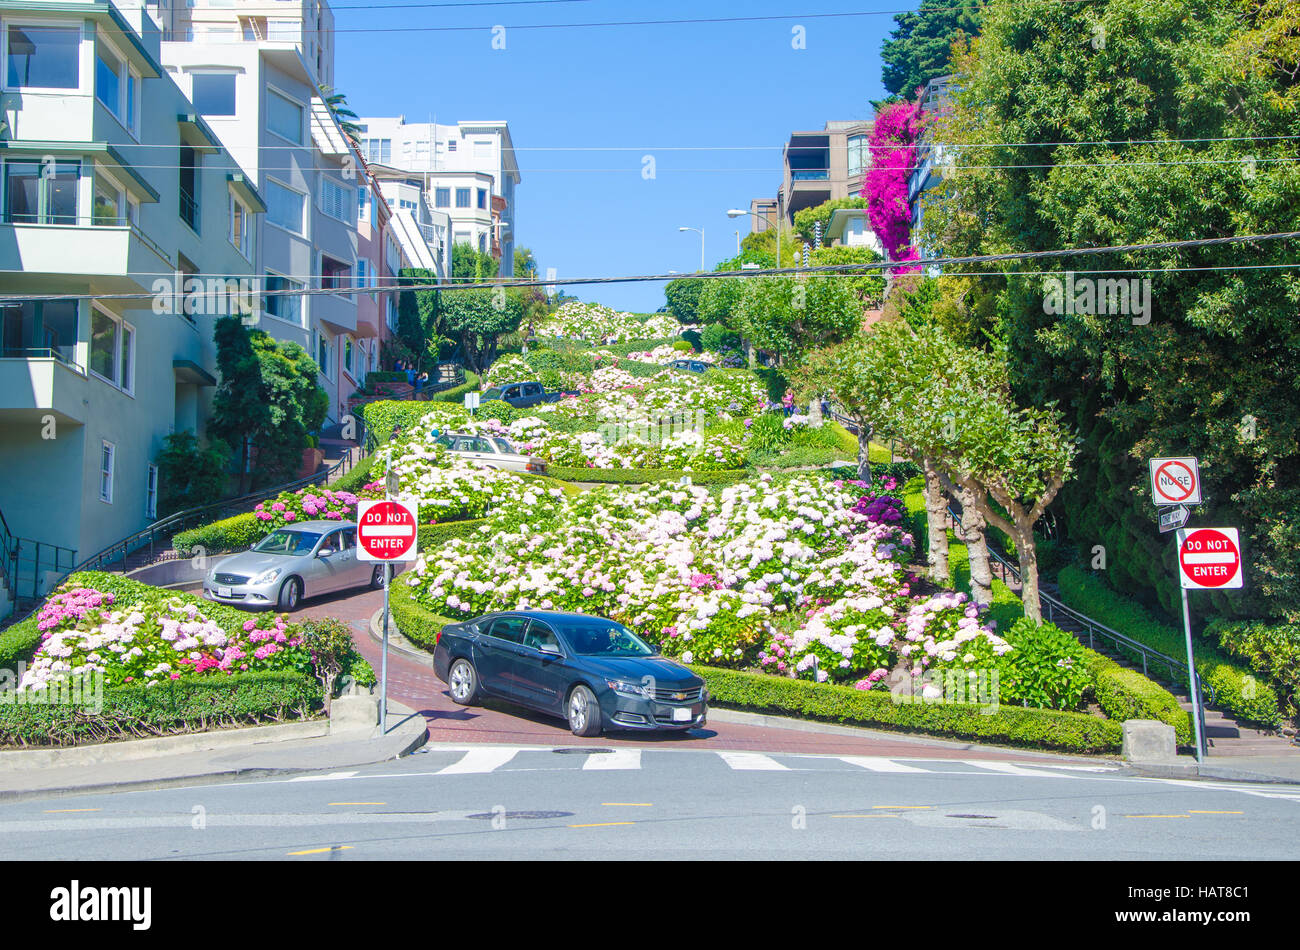 San Francisco, CA, USA - June 24, 2015: Lombard Street is an east-west street in San Francisco, California. The - Stock Image